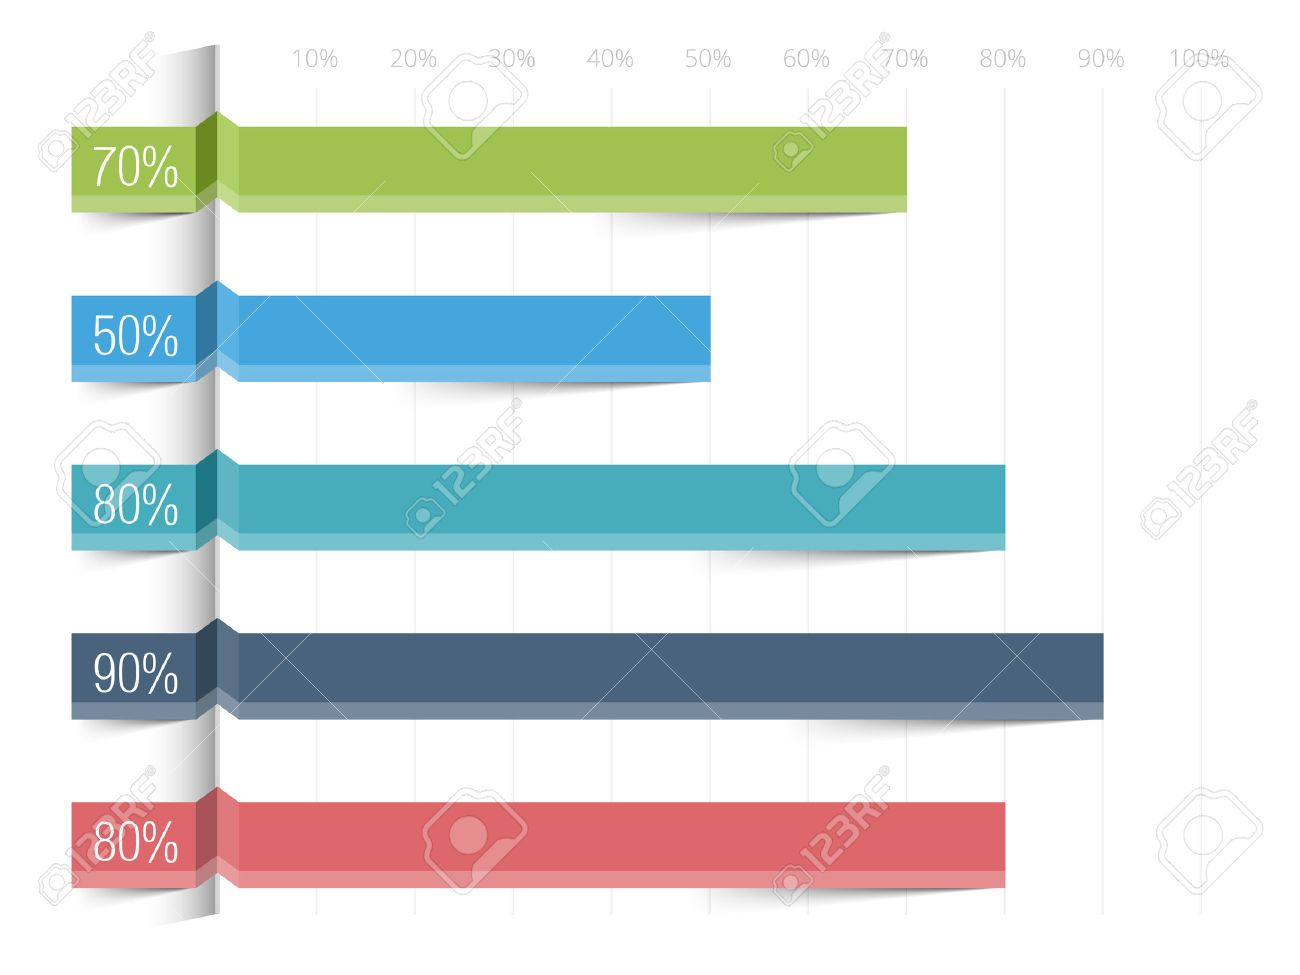 Horizontal Bar Graph Template With Percents Royalty Free Cliparts ...